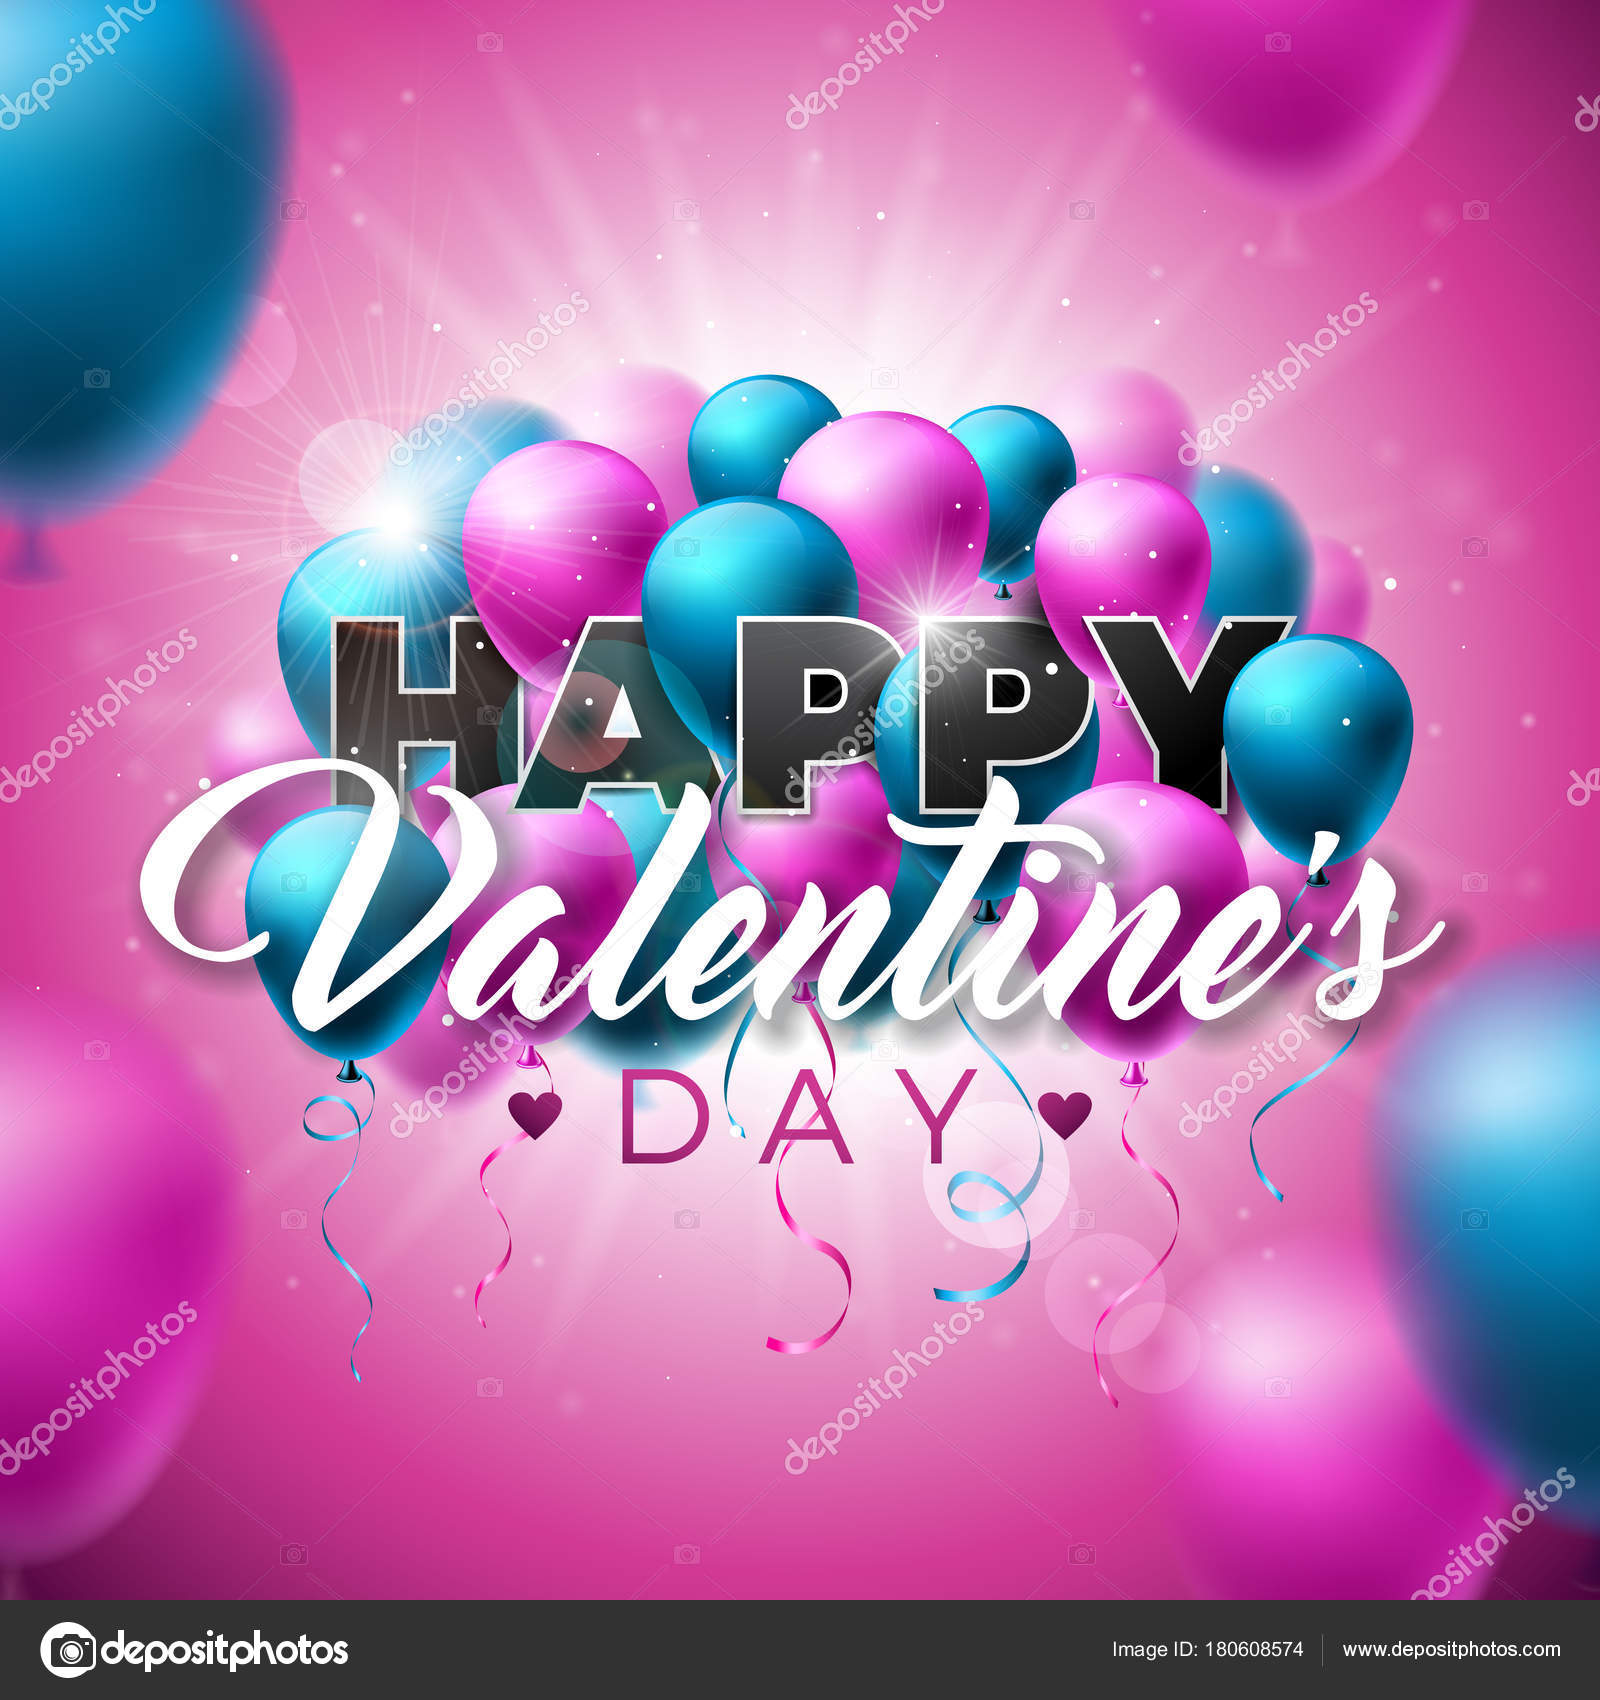 Happy Valentines Day Design with Color Balloon on Shiny Pink ...